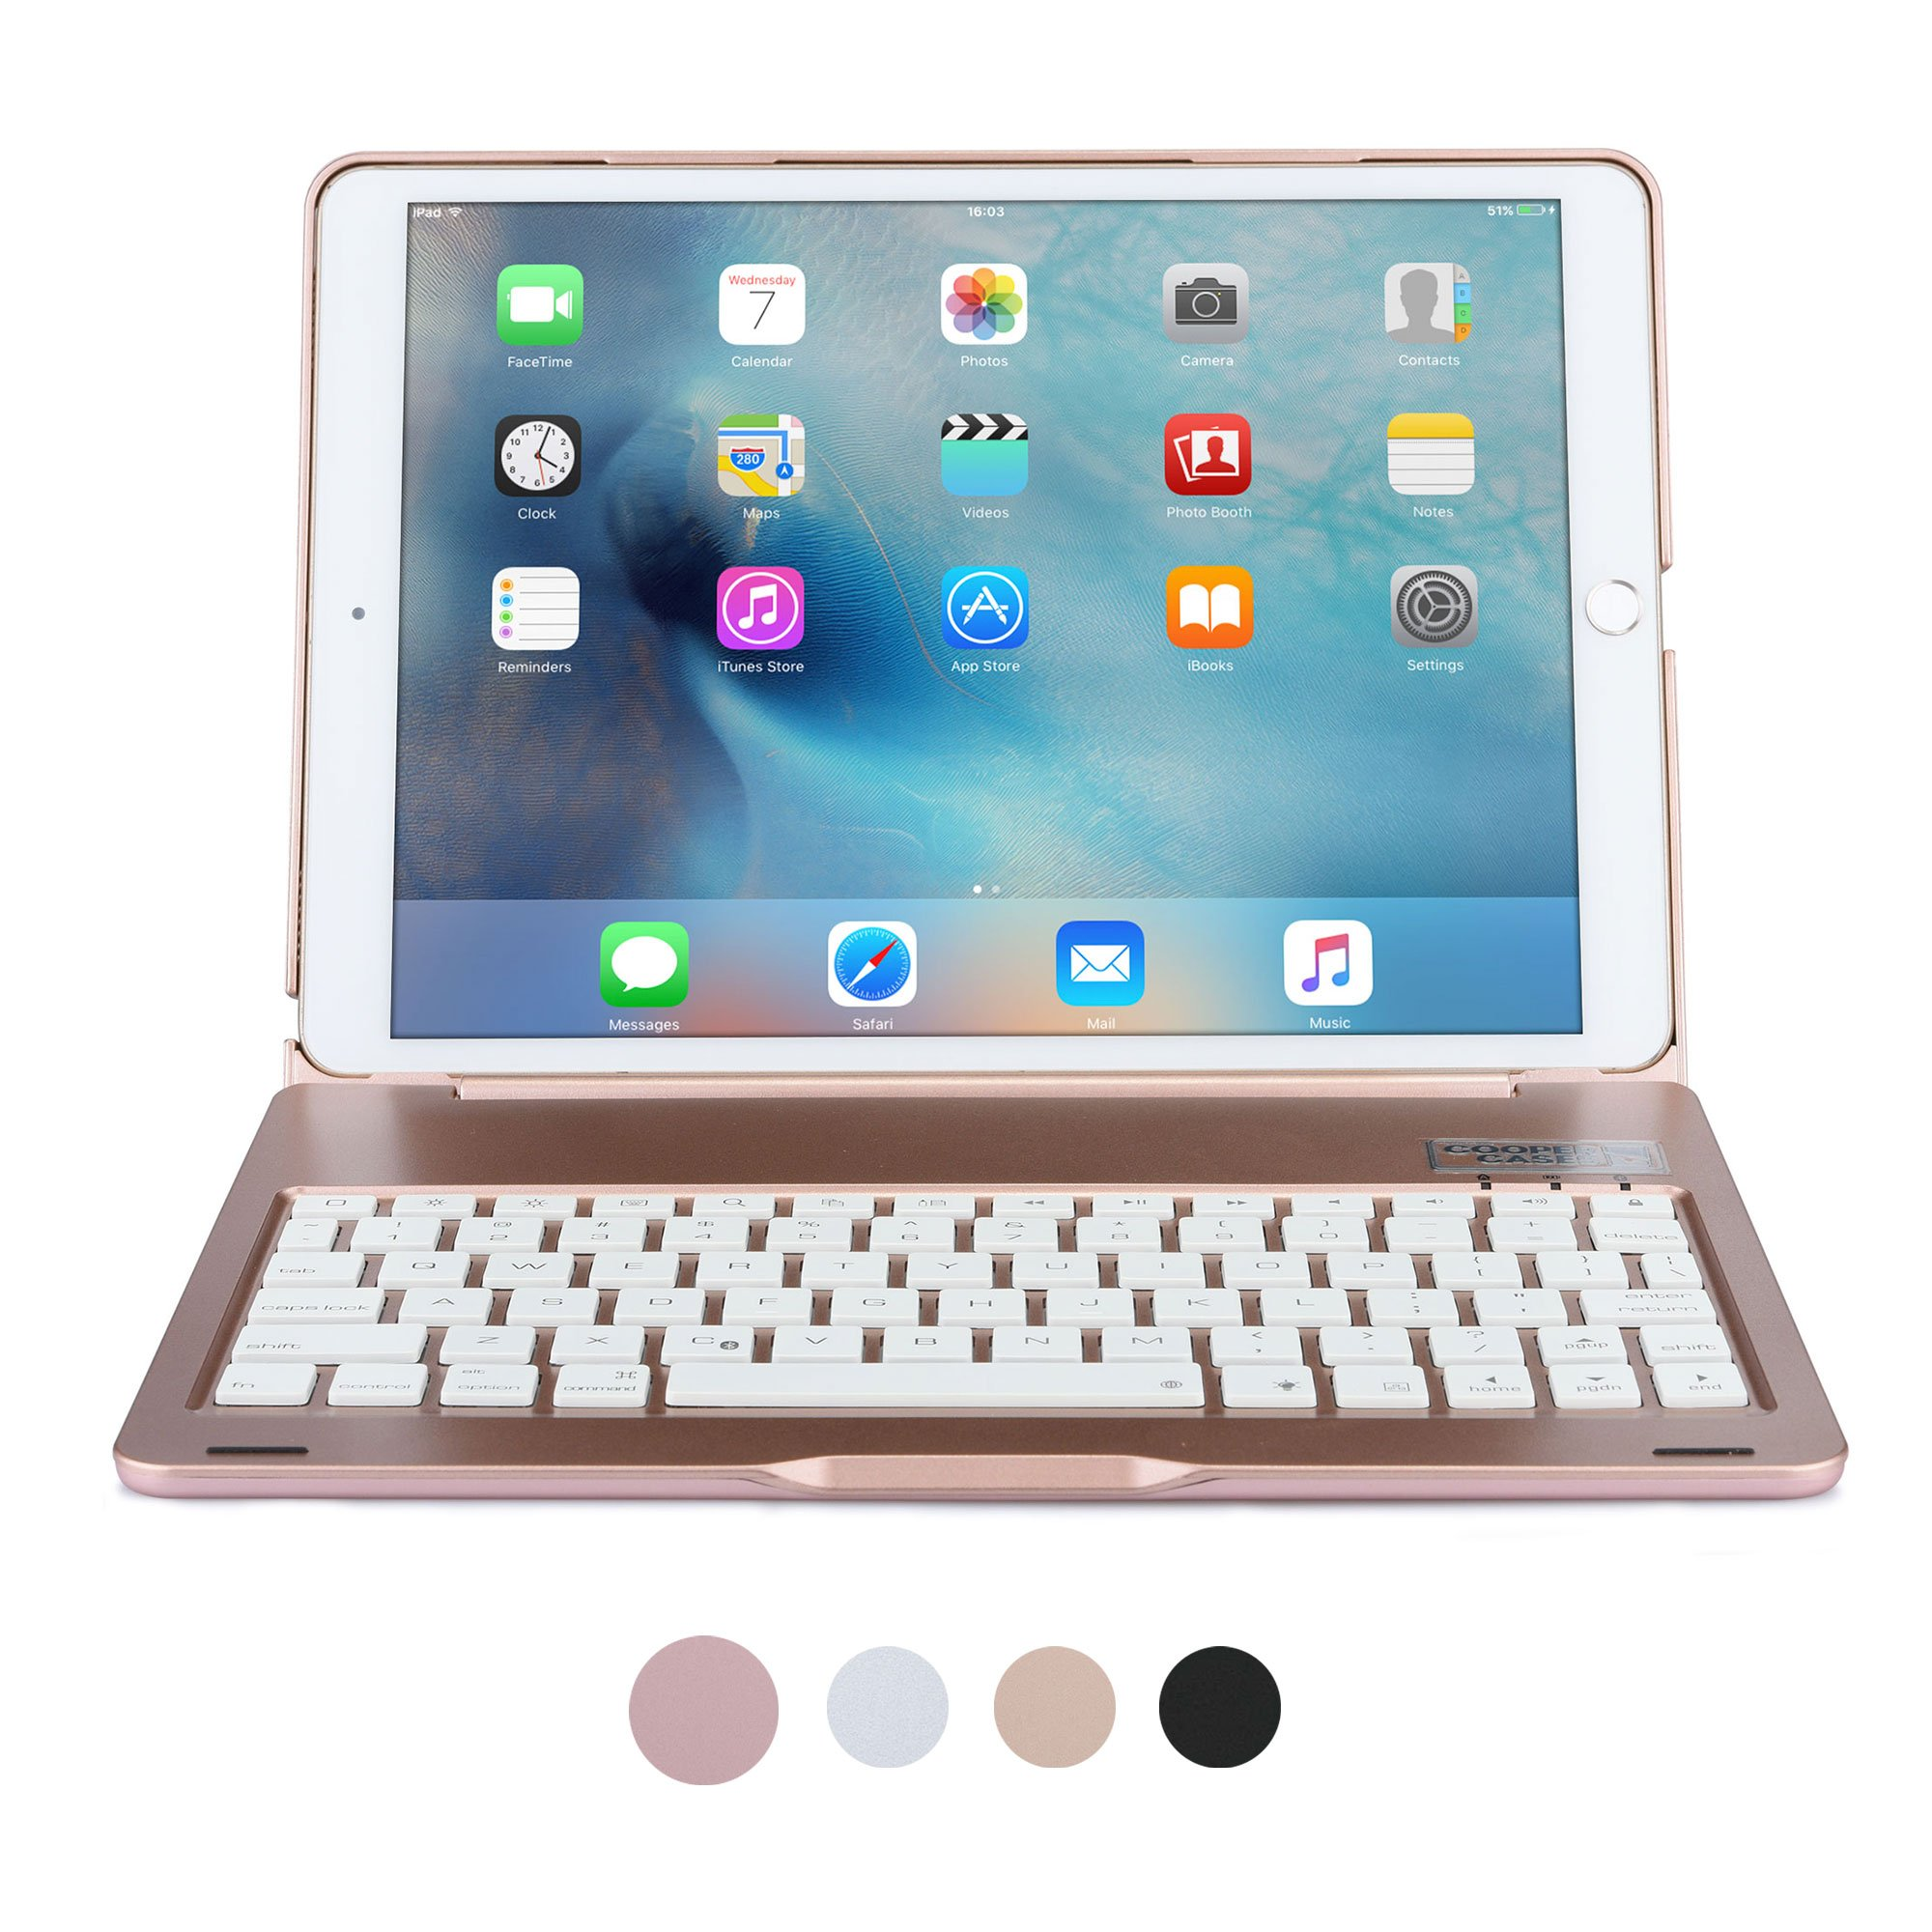 iPad Pro 10.5 Keyboard case, COOPER NOTEKEE F8S Backlit LED Bluetooth Wireless Rechargeable Keyboard Portable Laptop Macbook Clamshell Clamcase Cover with 7 Backlight Colors (Rose Gold)